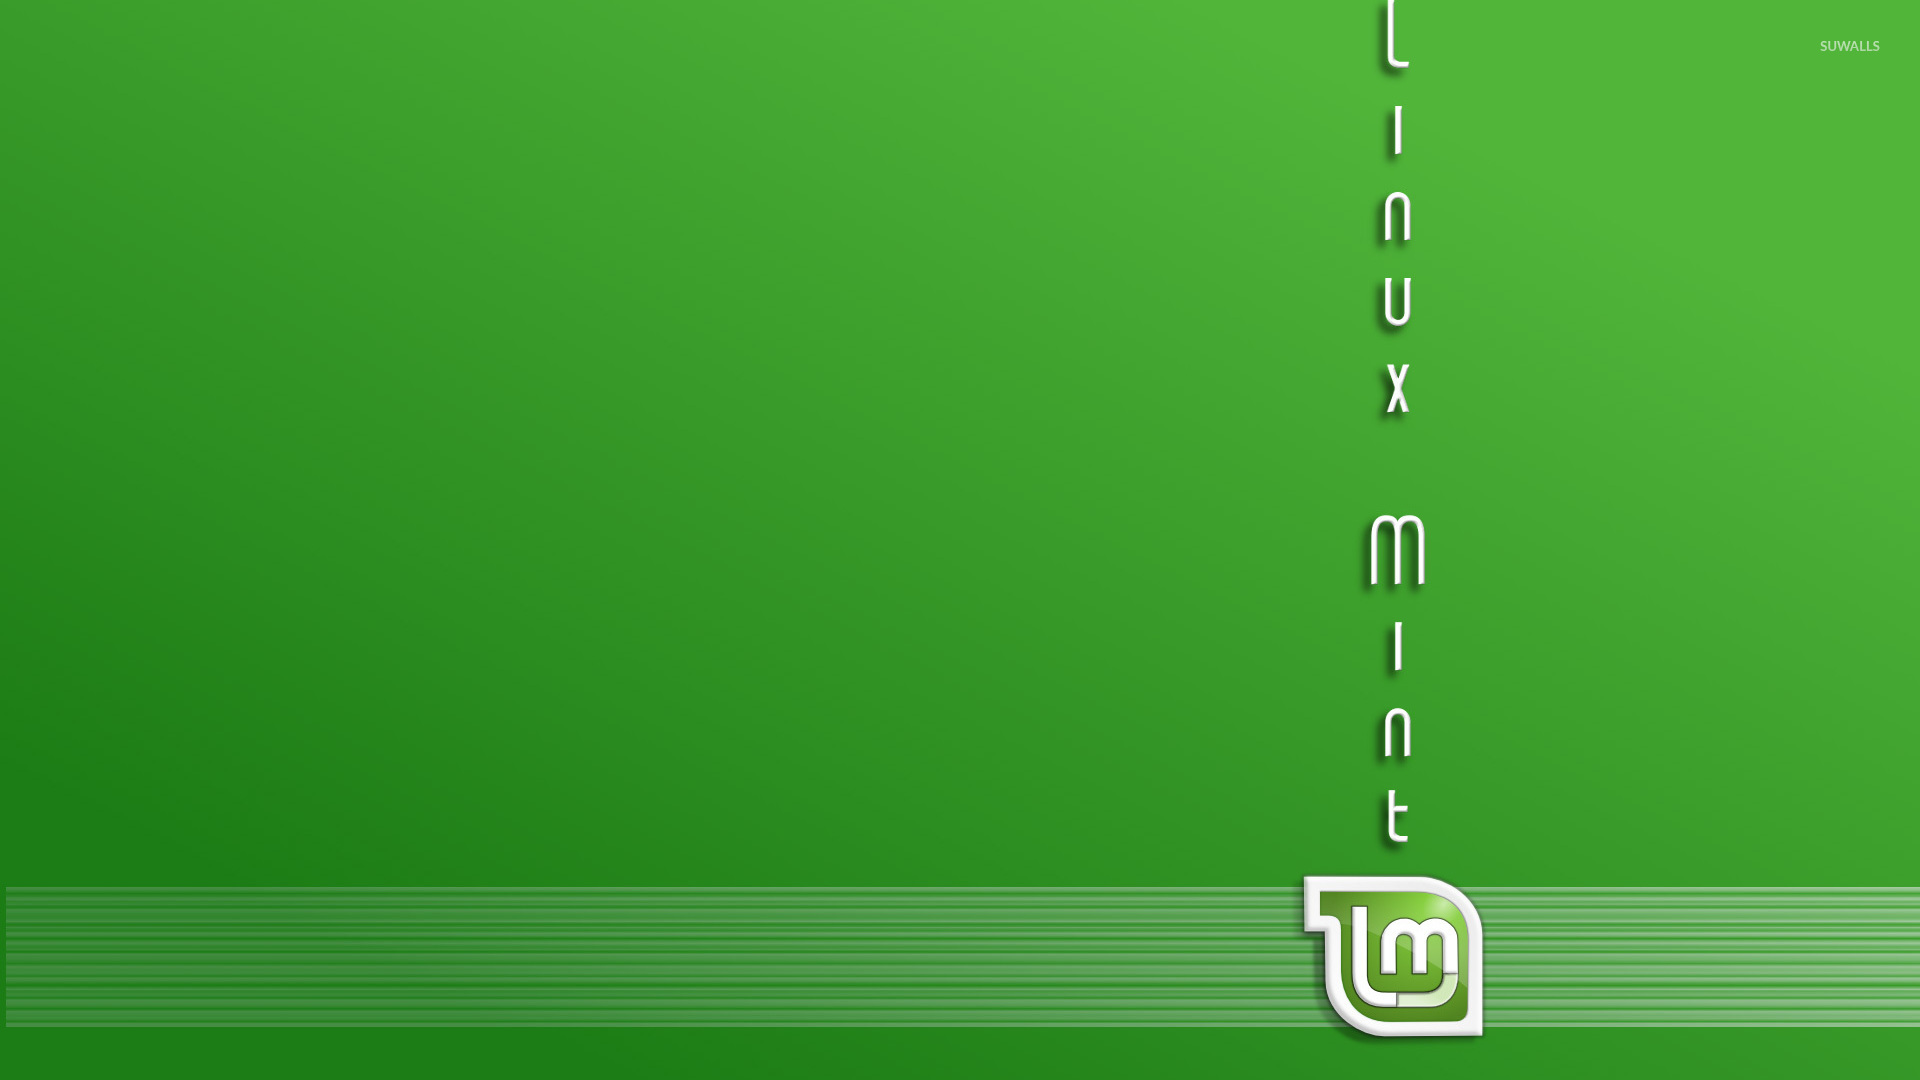 Linux Mint wallpaper 1920x1080 1920x1080